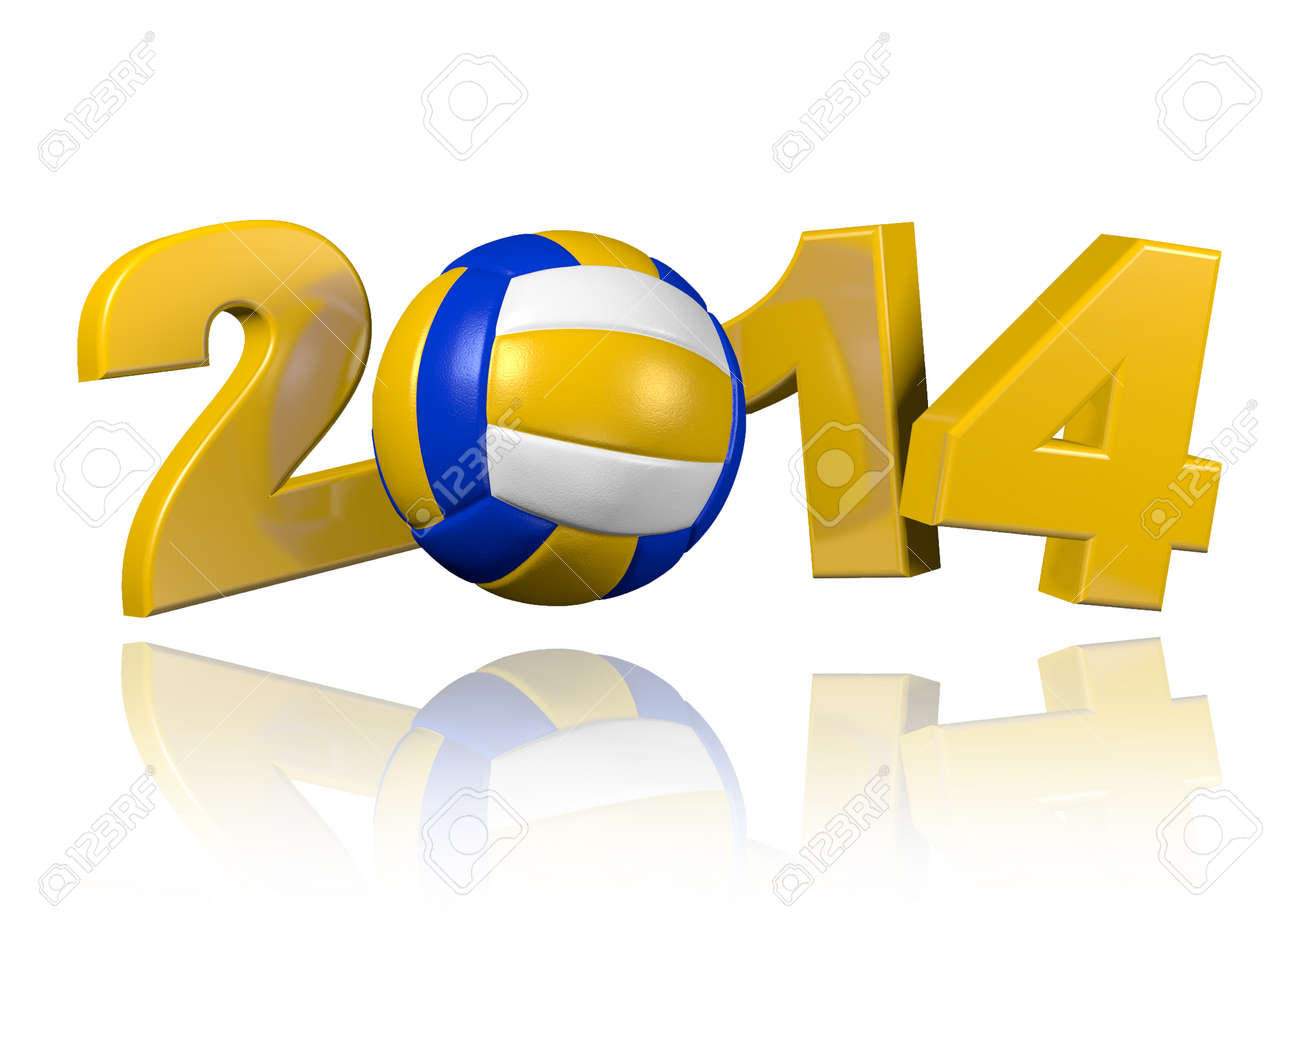 Beach Volleyball 2014 design with a White Background - 23284764